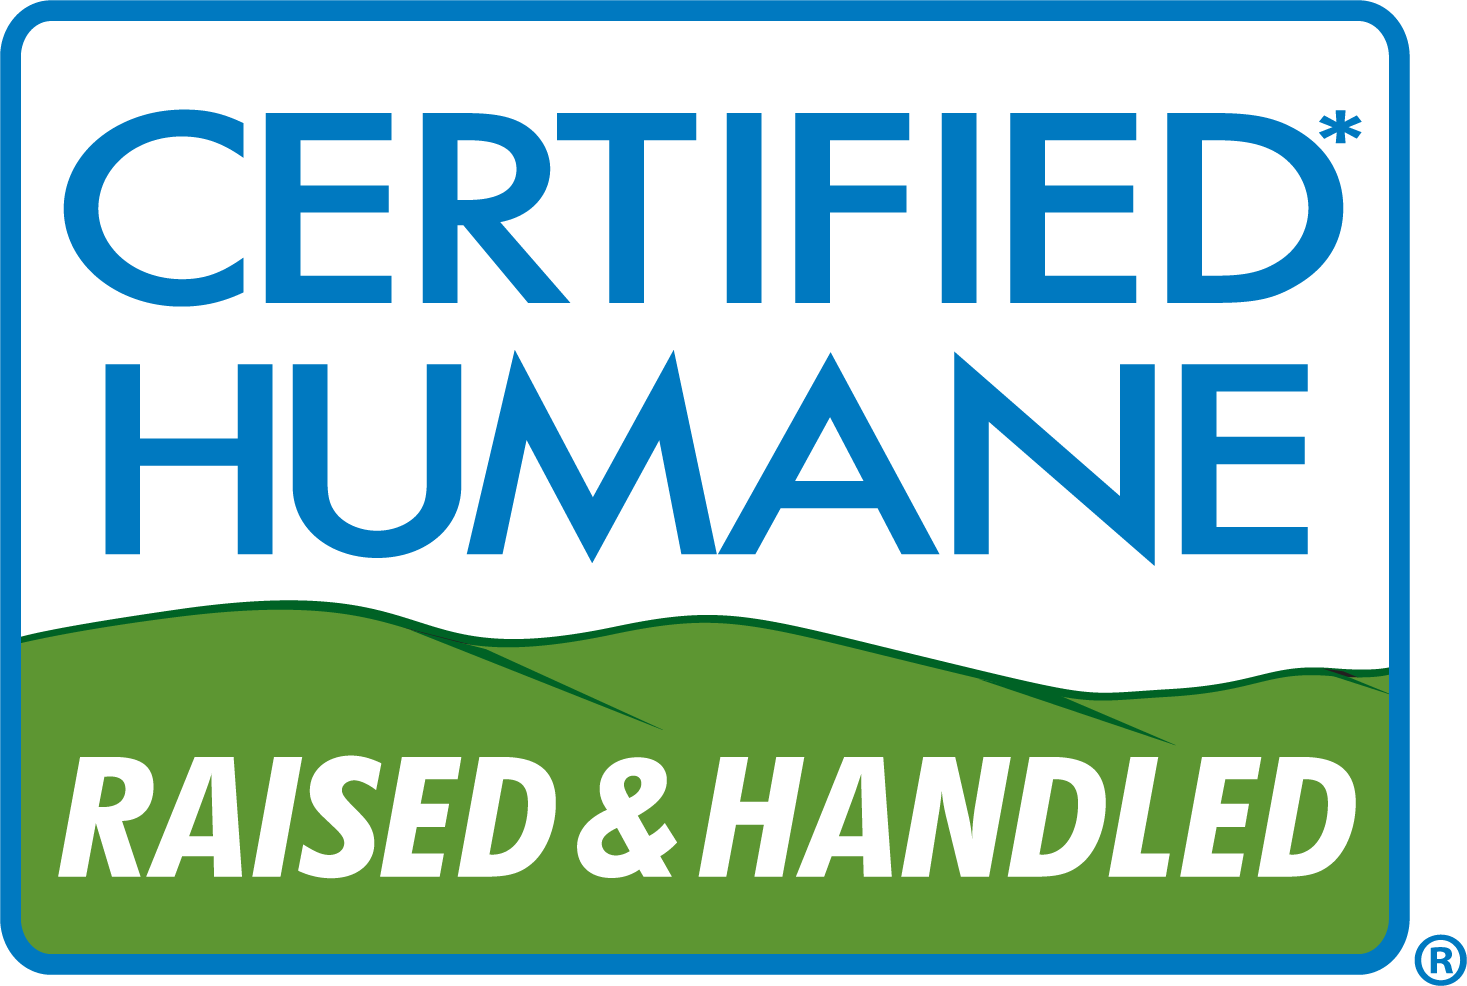 Certified Humane